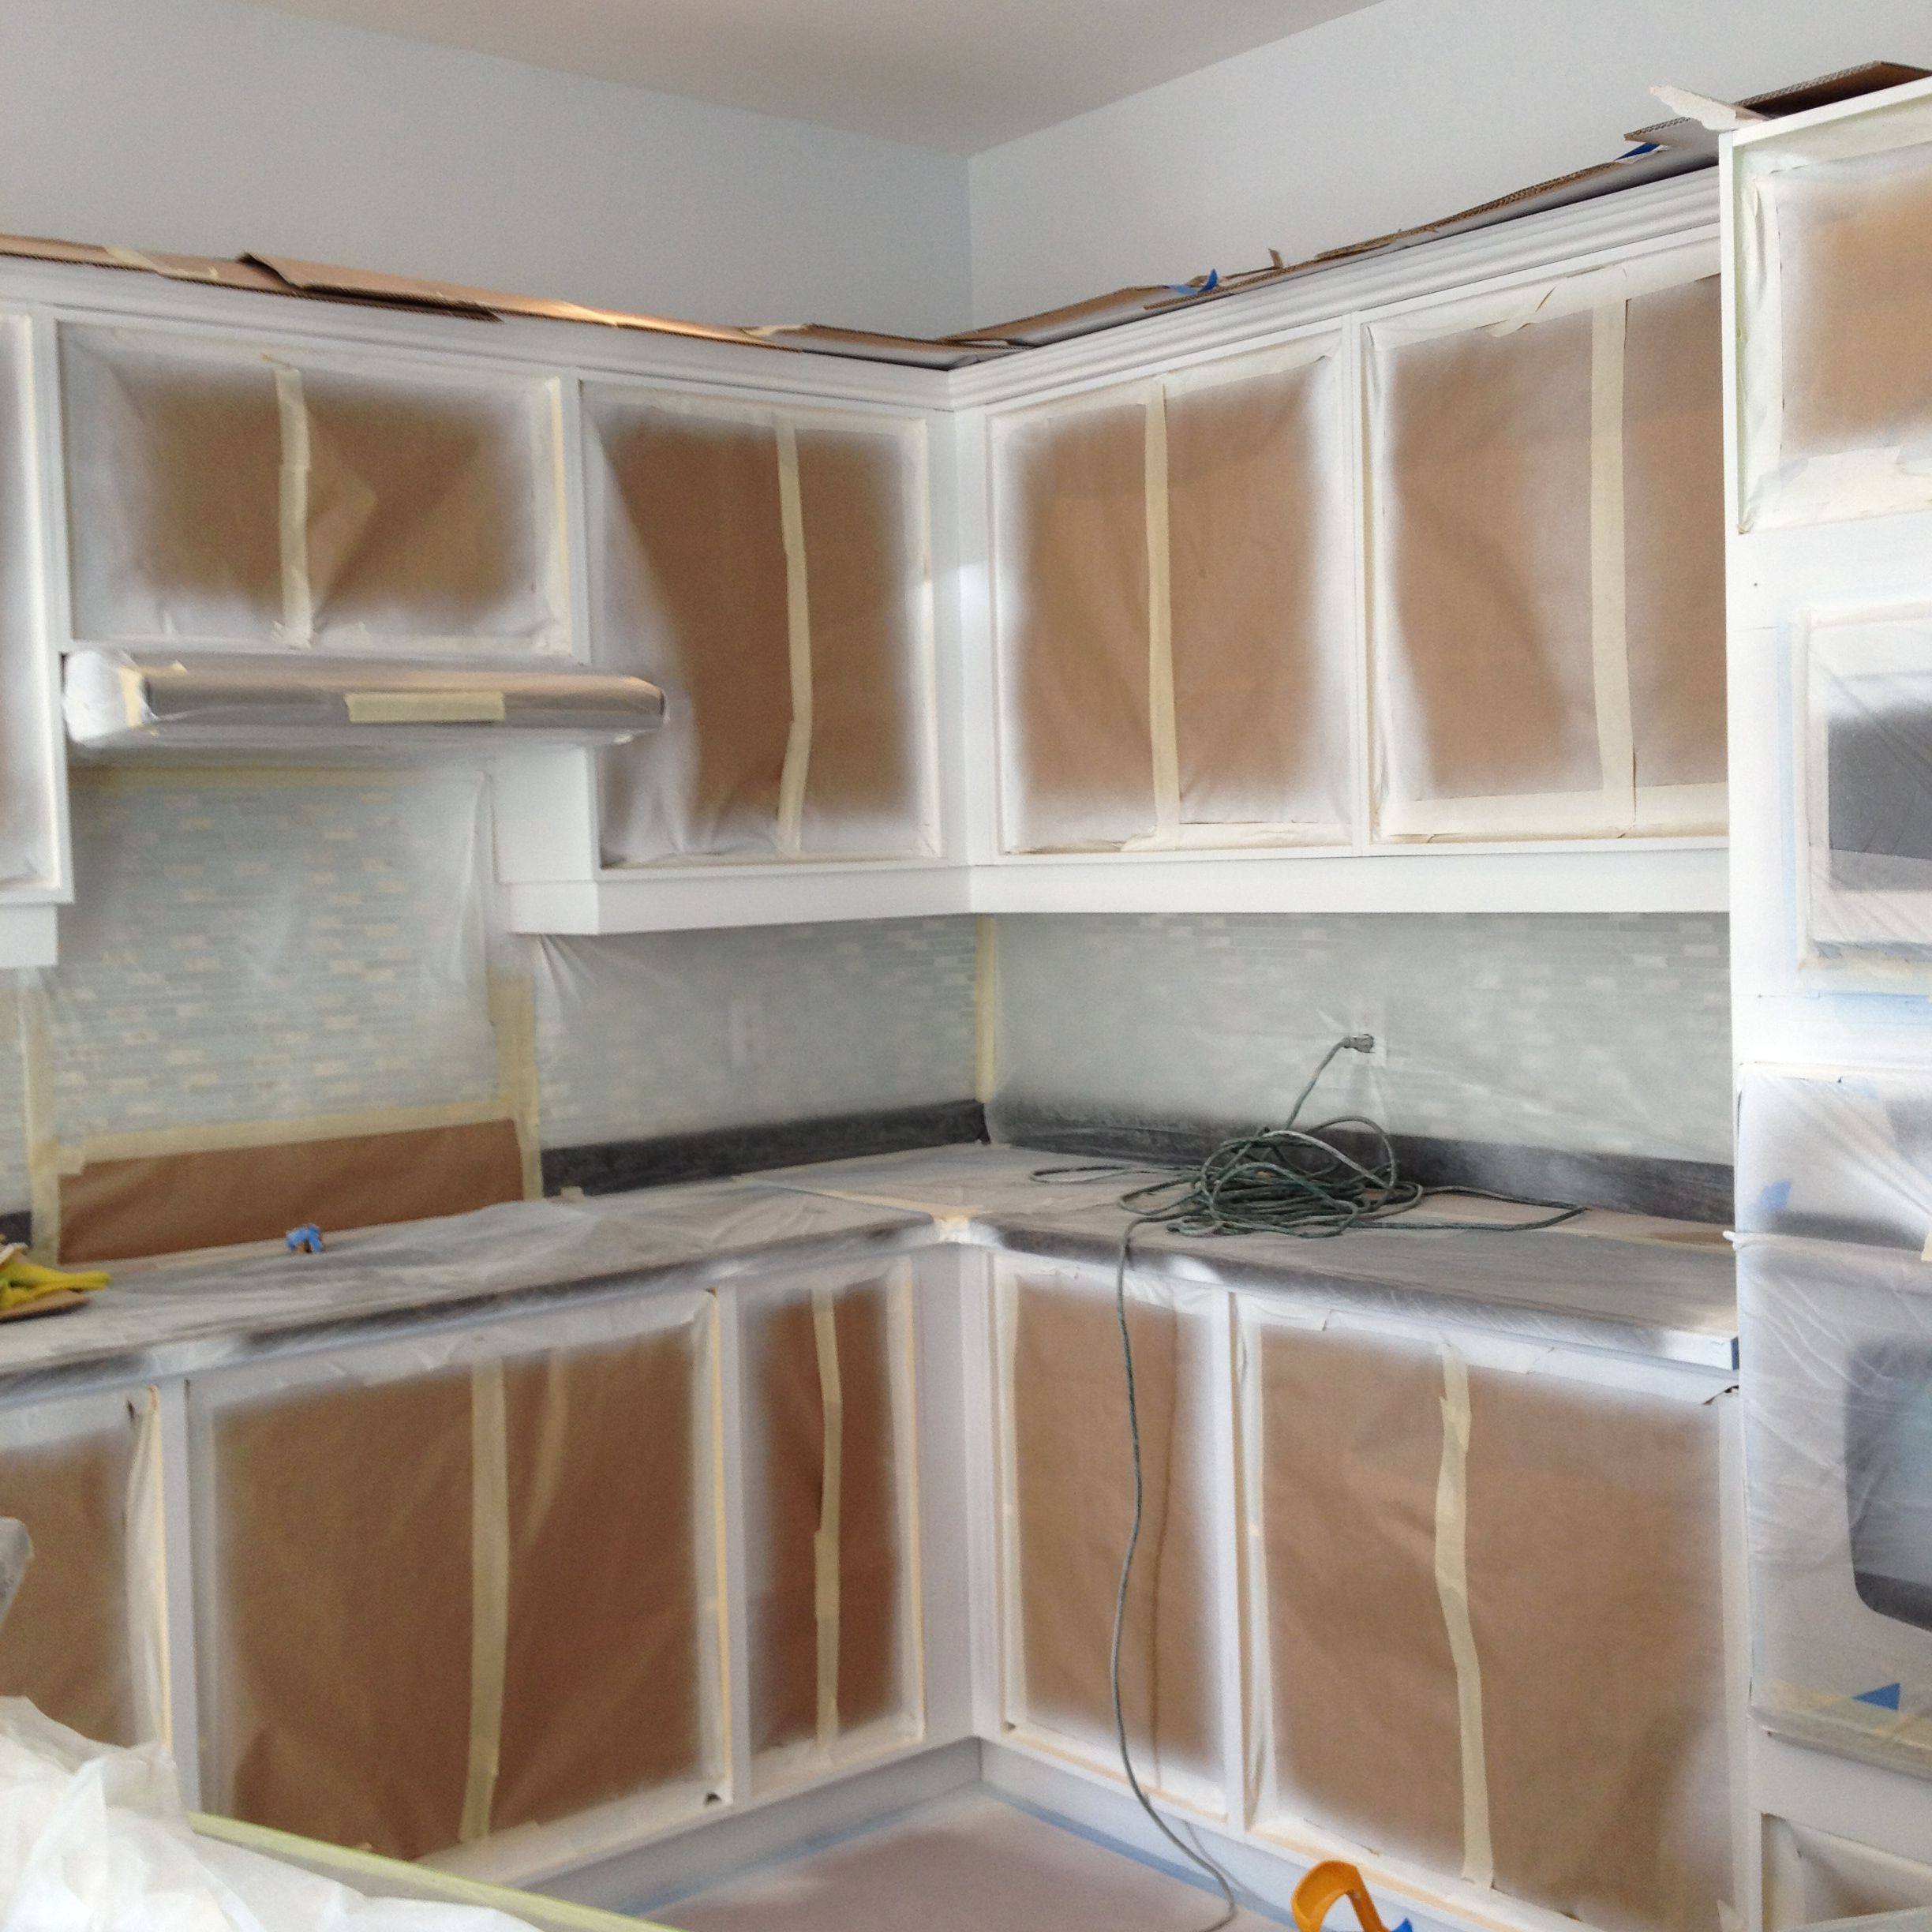 By Todd Sharrard When Refinishing Kitchen Cabinets The Painting